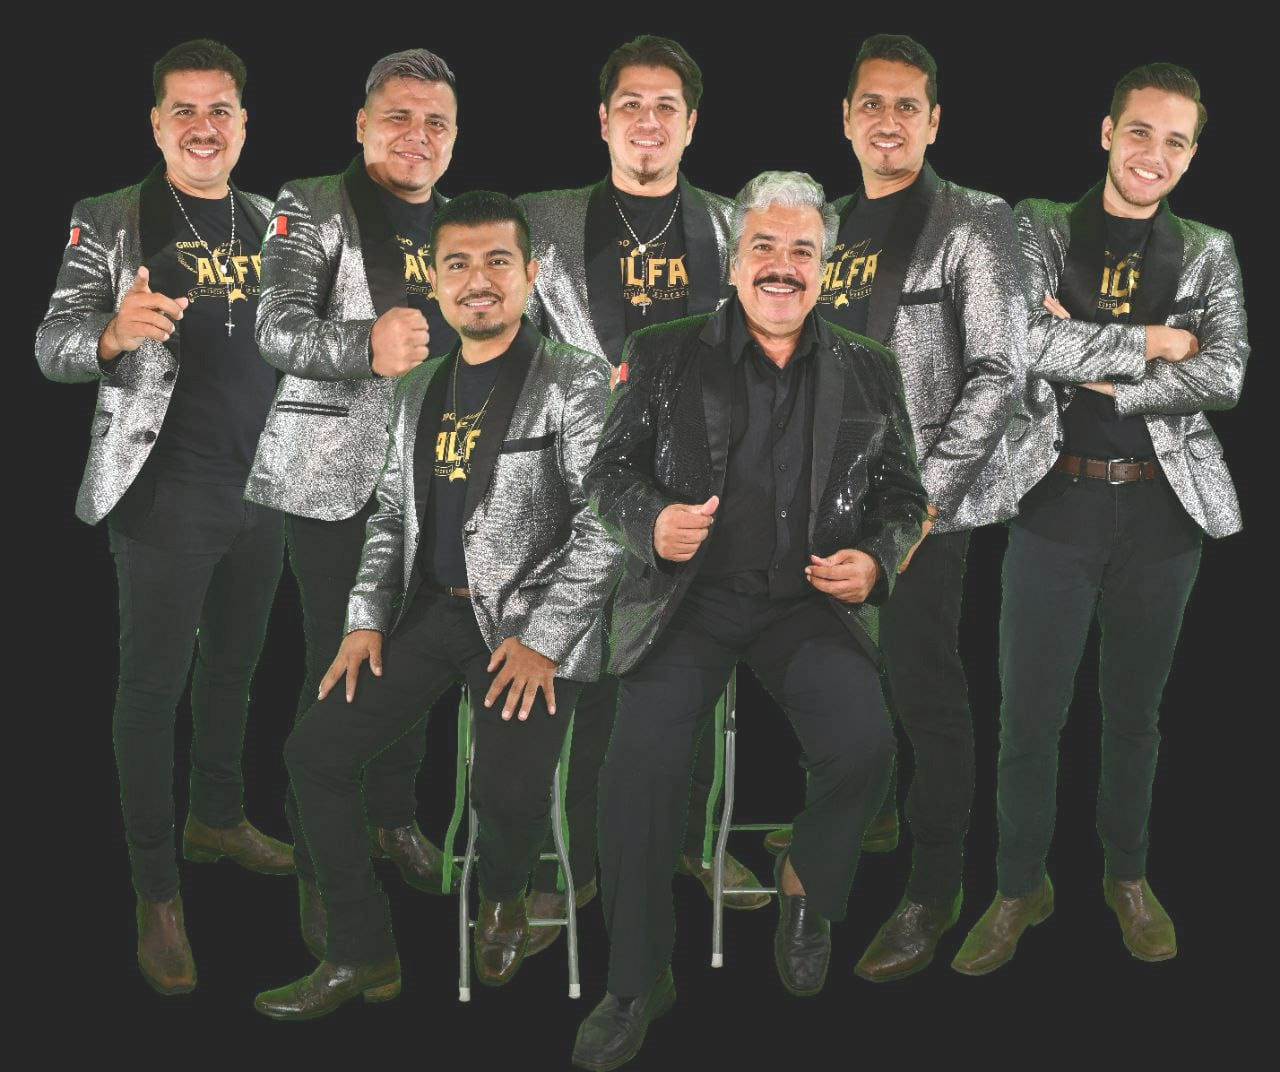 Musical Group Alpha 7 Comes to the Streets of Pasco